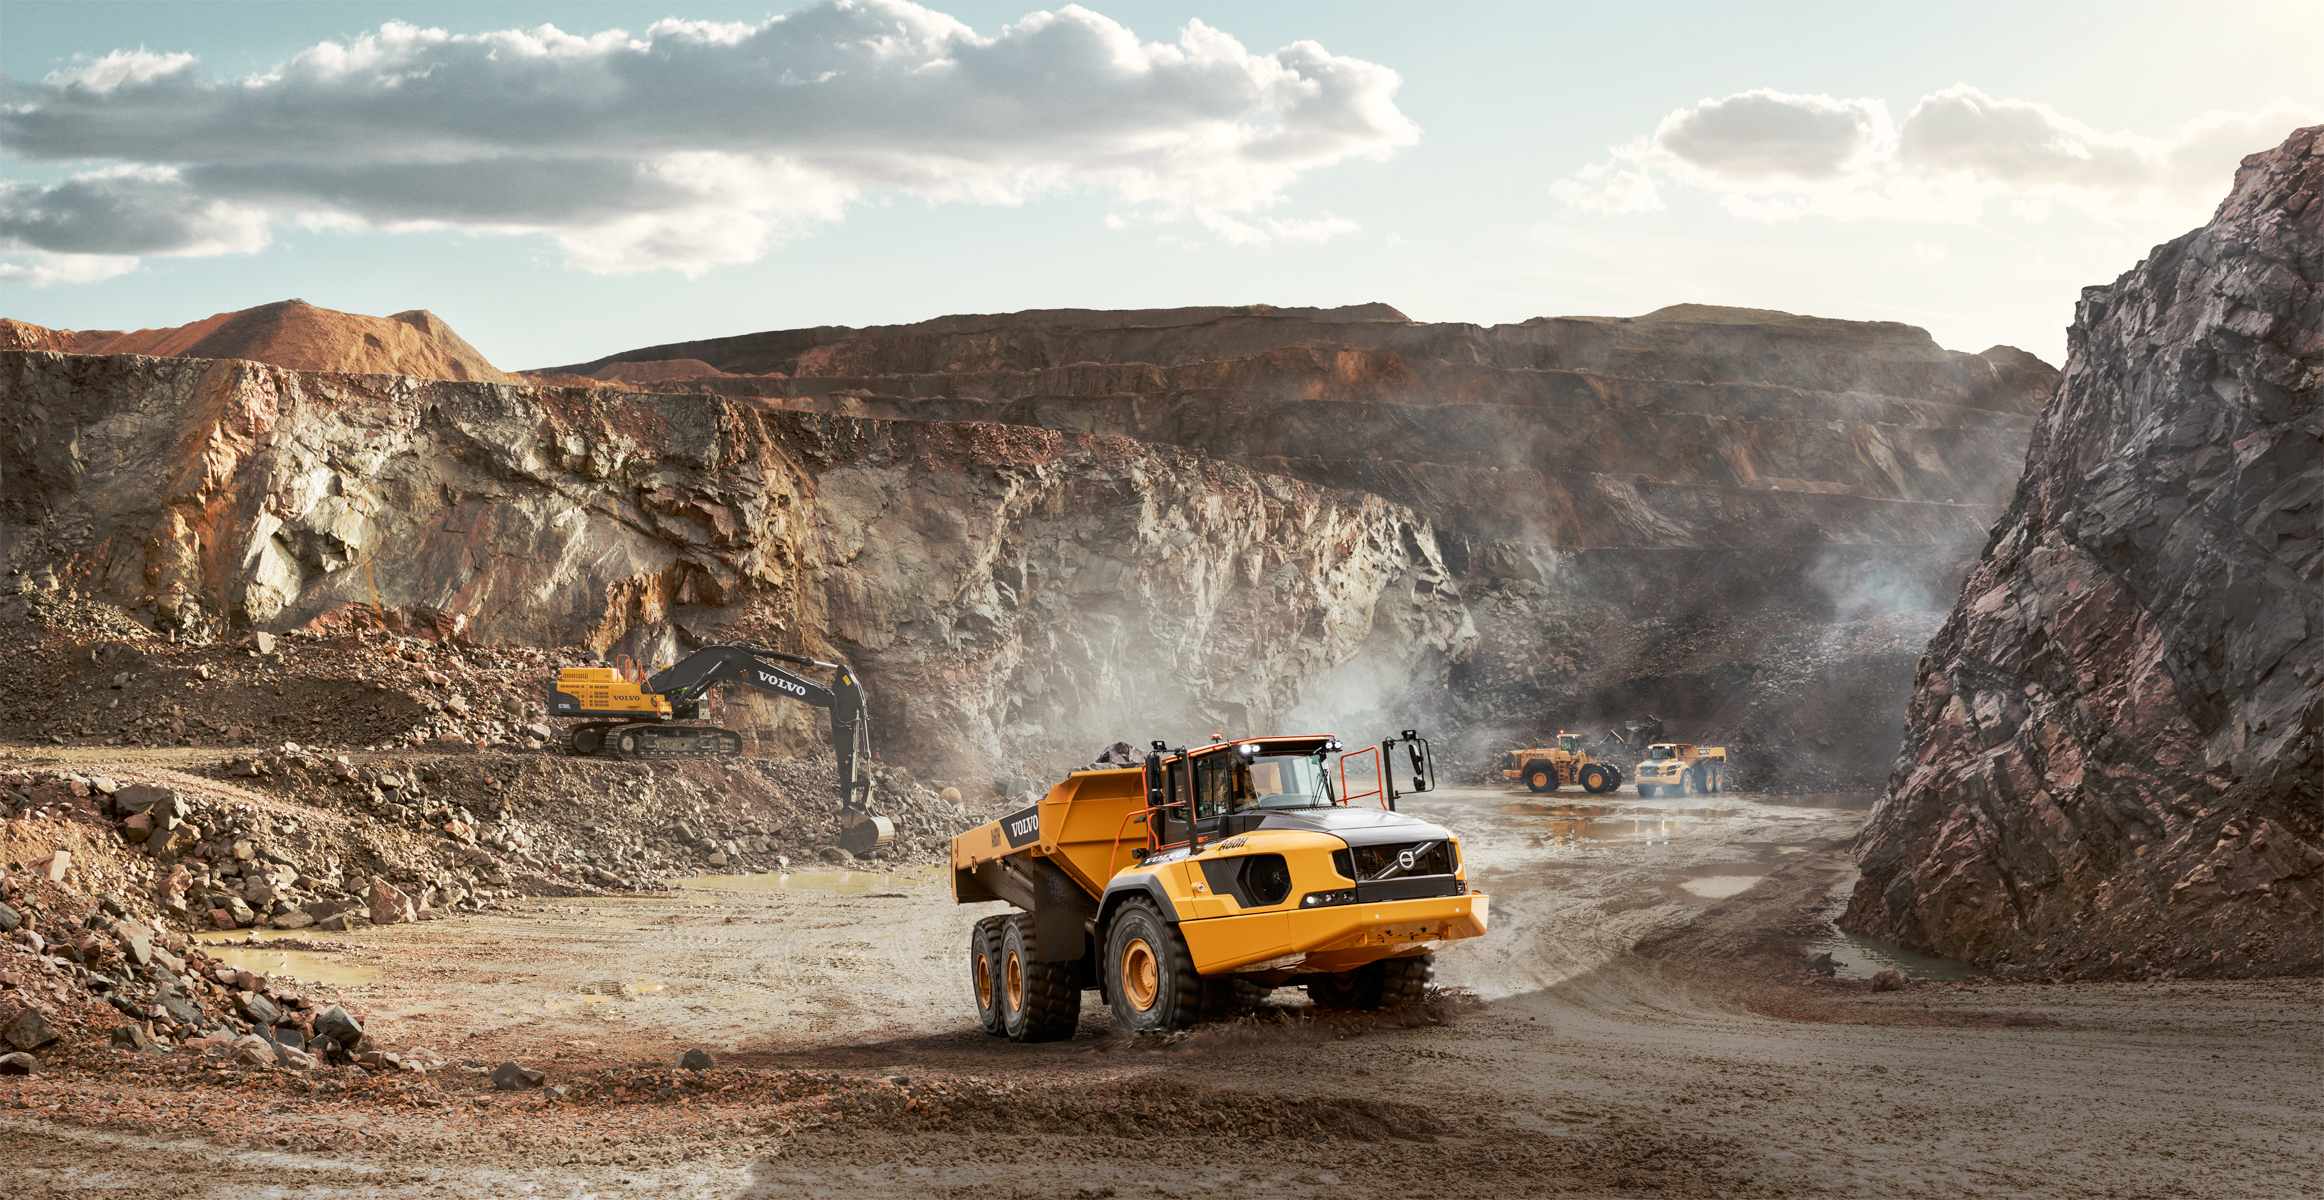 A60h Articulated Haulers Overview Volvo Construction